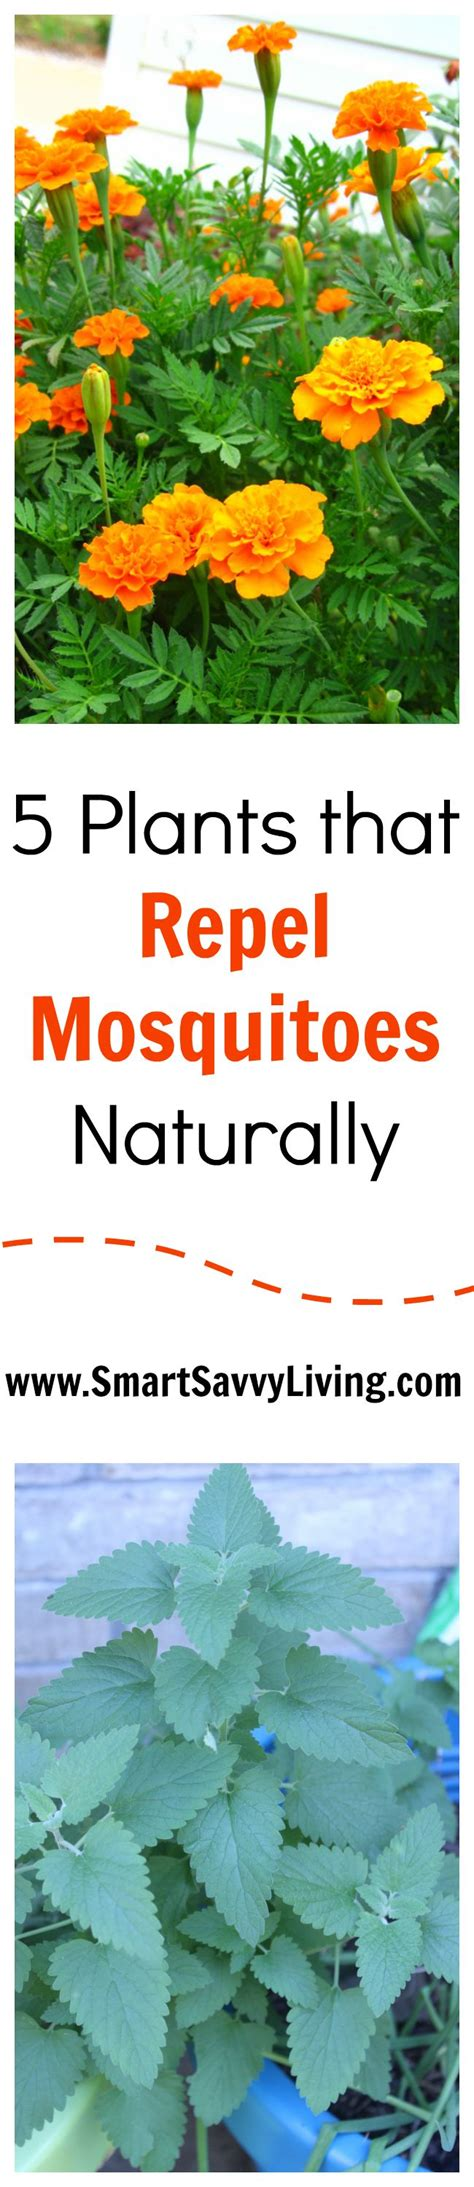 25 best ideas about lemongrass mosquito on pinterest mosquito repelling plants plants in